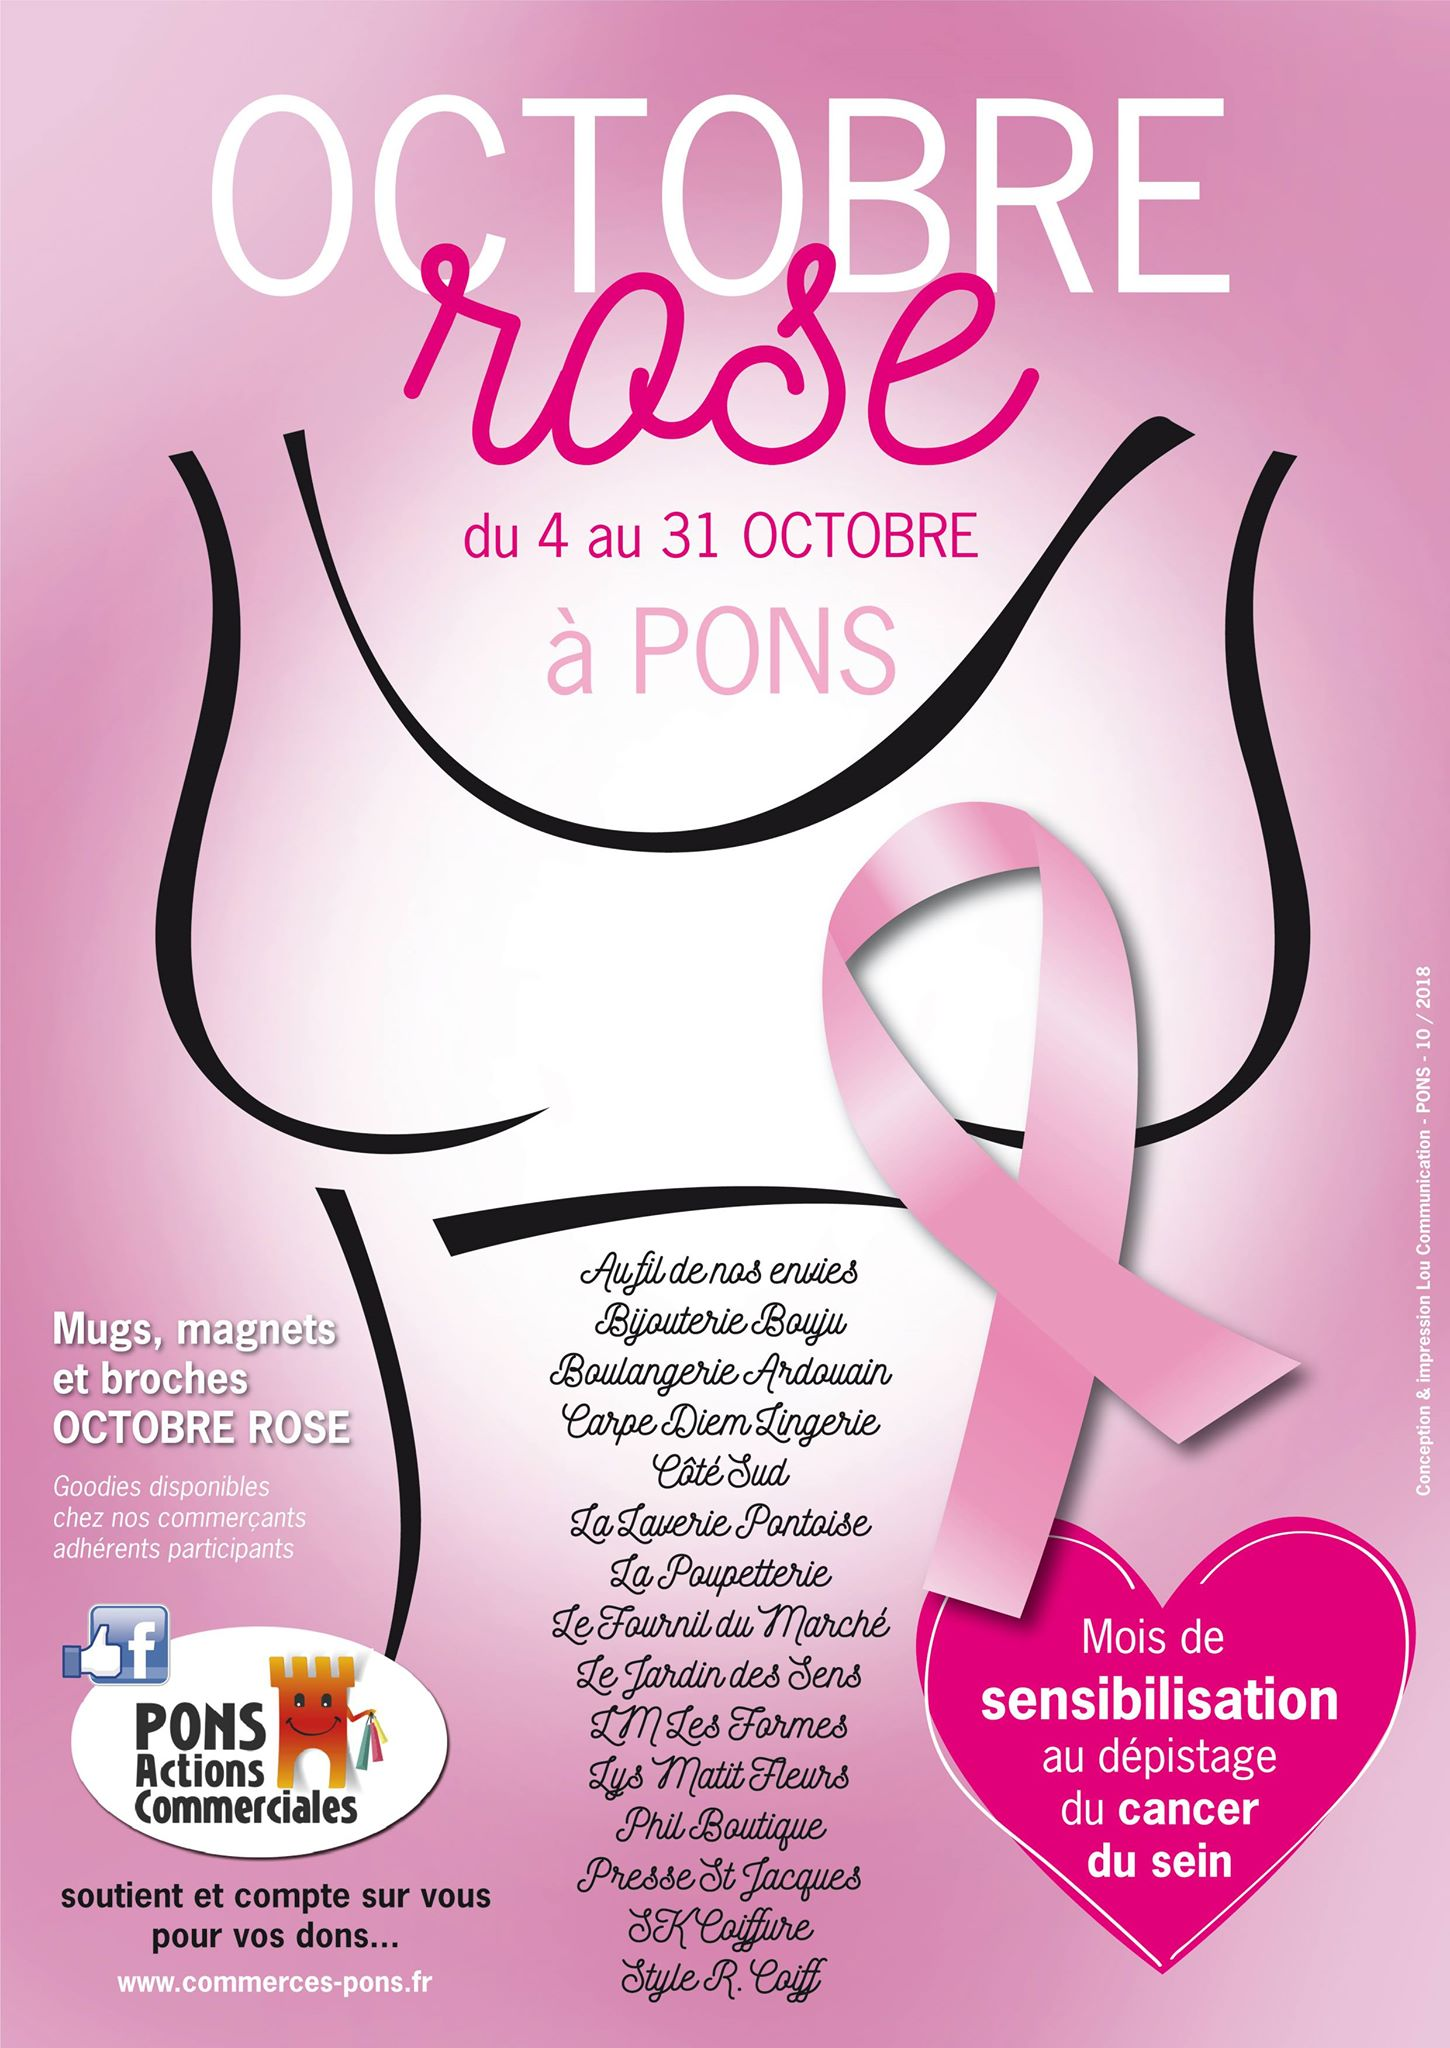 Octobre Rose 2018 - Pons Actions commerciales